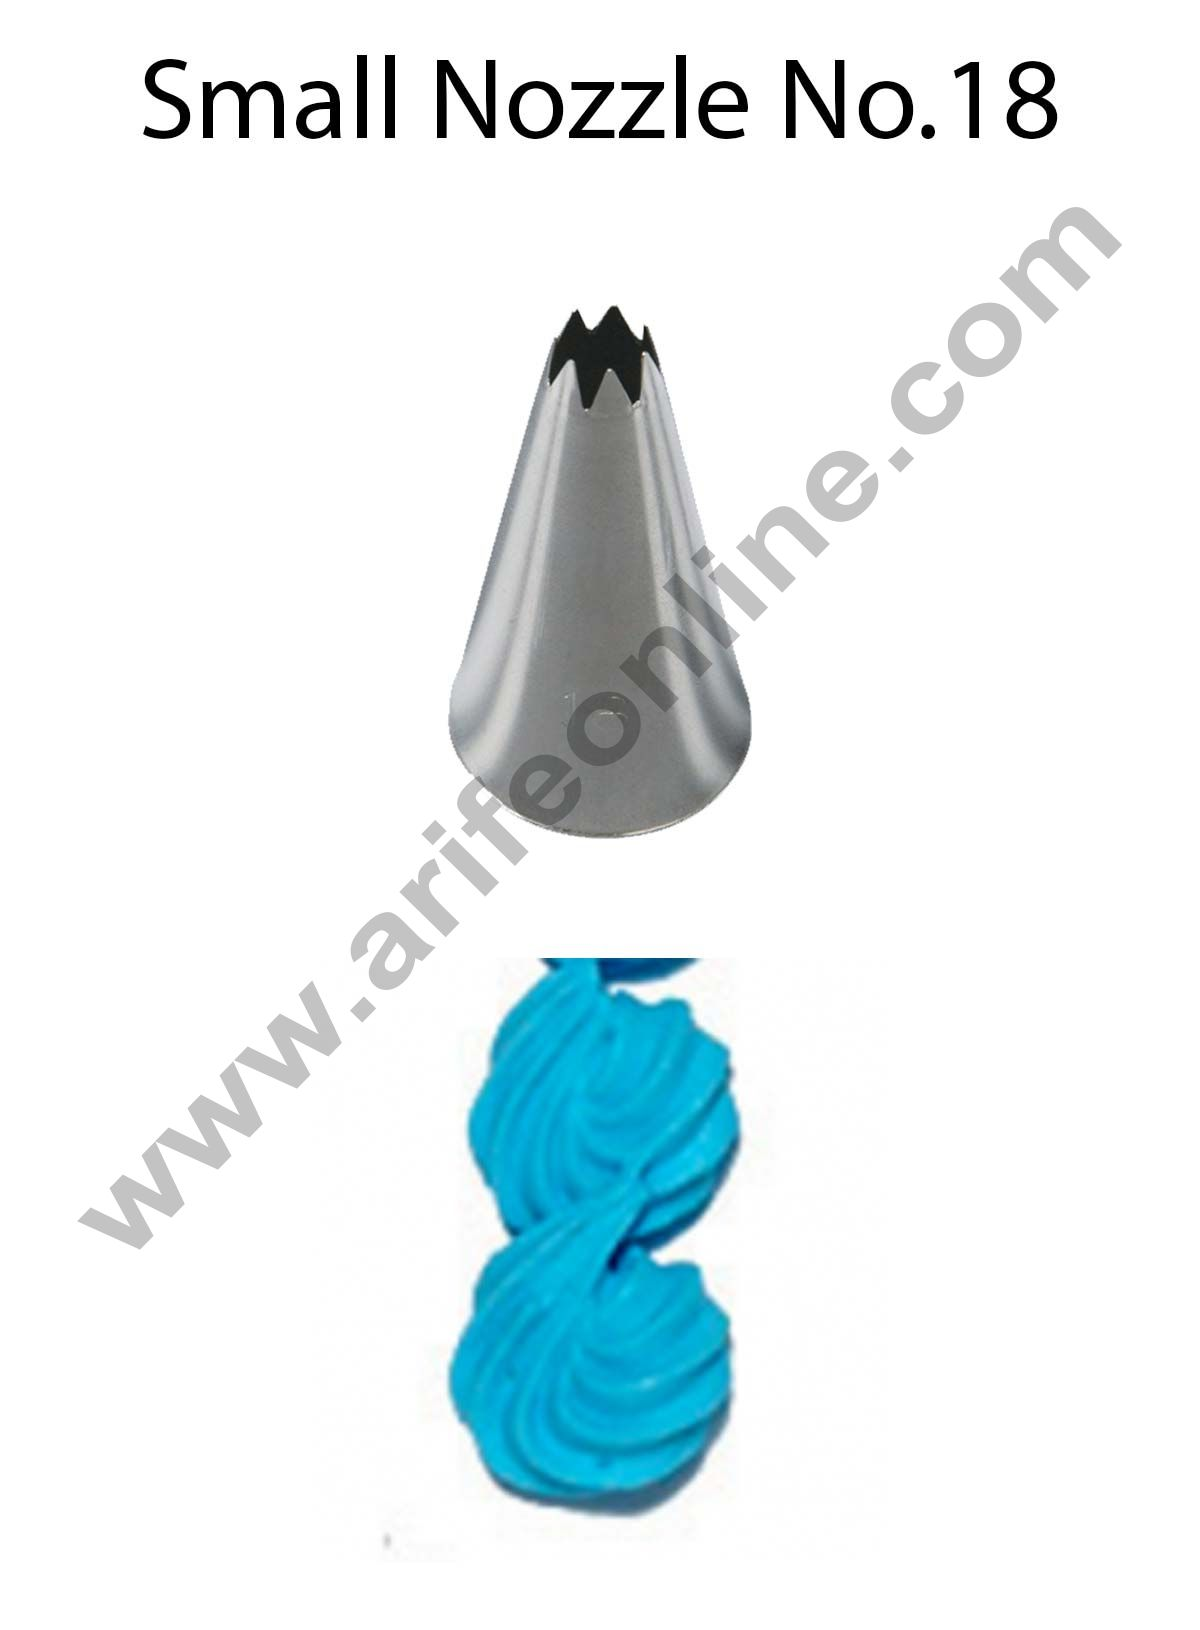 Cake Decor Small Nozzle - No. 18 Open Star Piping Nozzle